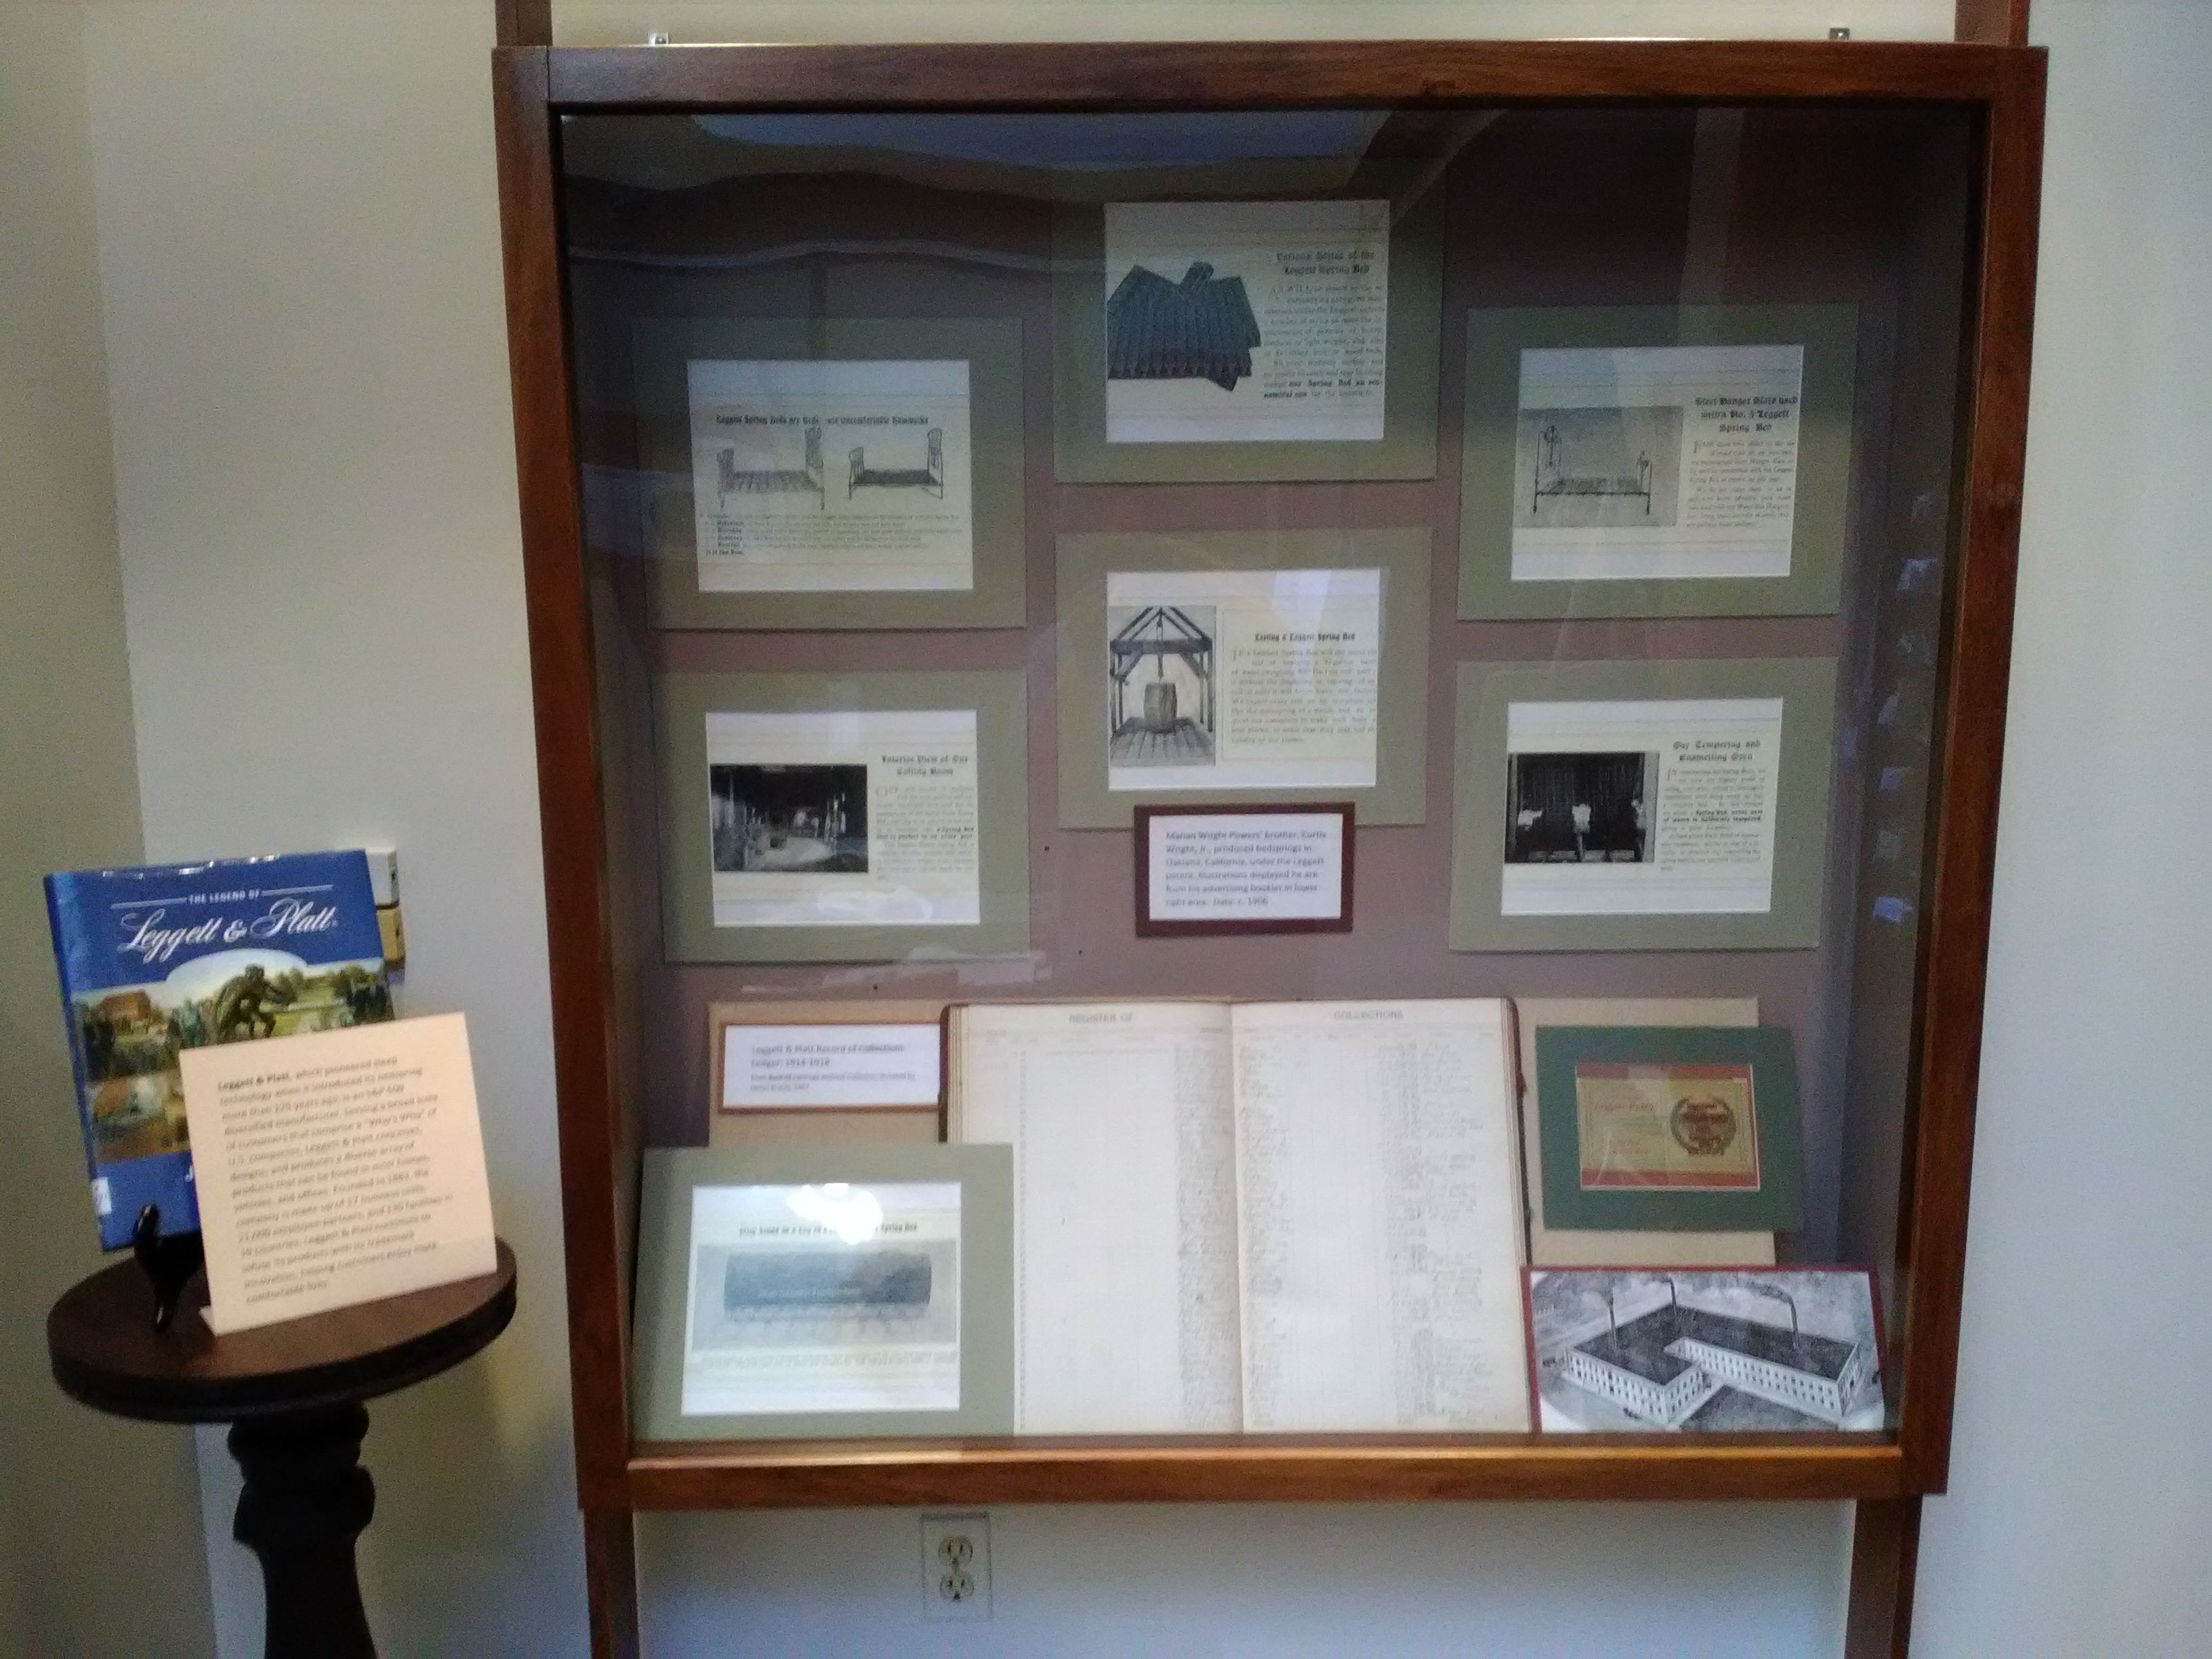 2017  Display case on Leggett & Platt, Inc., illustrated its early products of the early 20th century. The 175th Anniversary of Carthage Exhibit was made possible by generous Exhibit Partner Leggett & Platt, Inc.